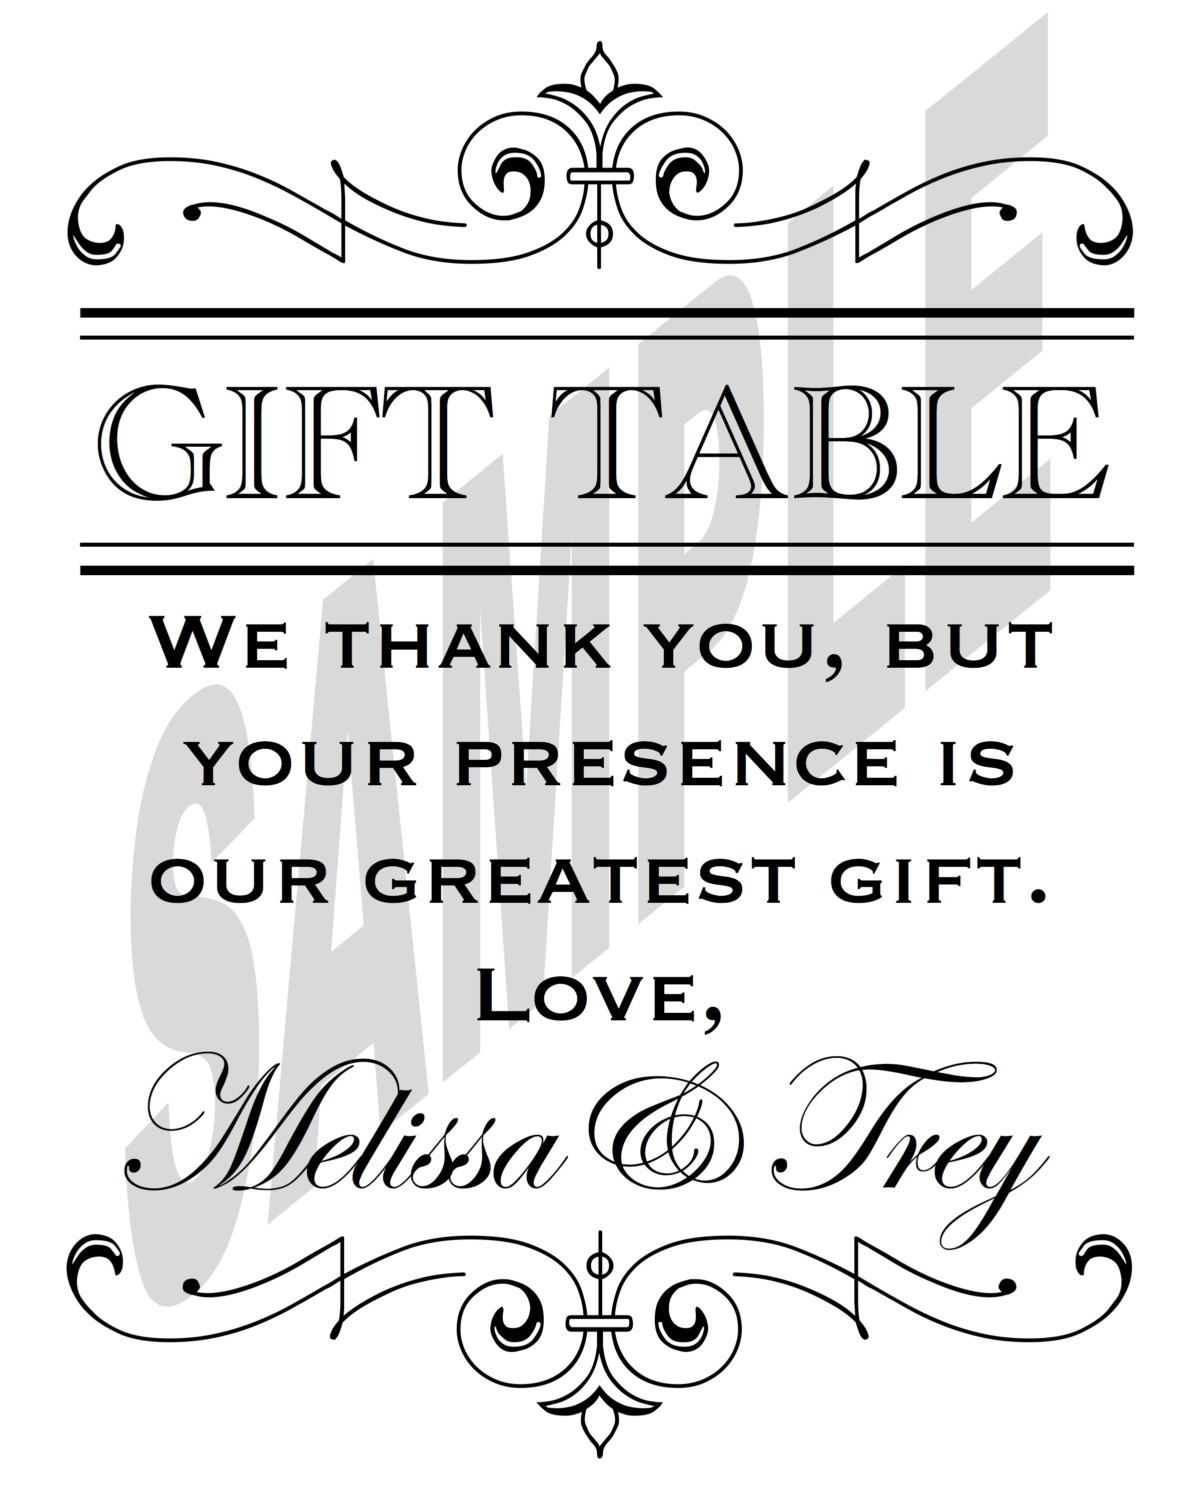 Thank You Sign For Wedding Gift Table : gifts great gifts the gift wedding gift table signs wedding signs ...